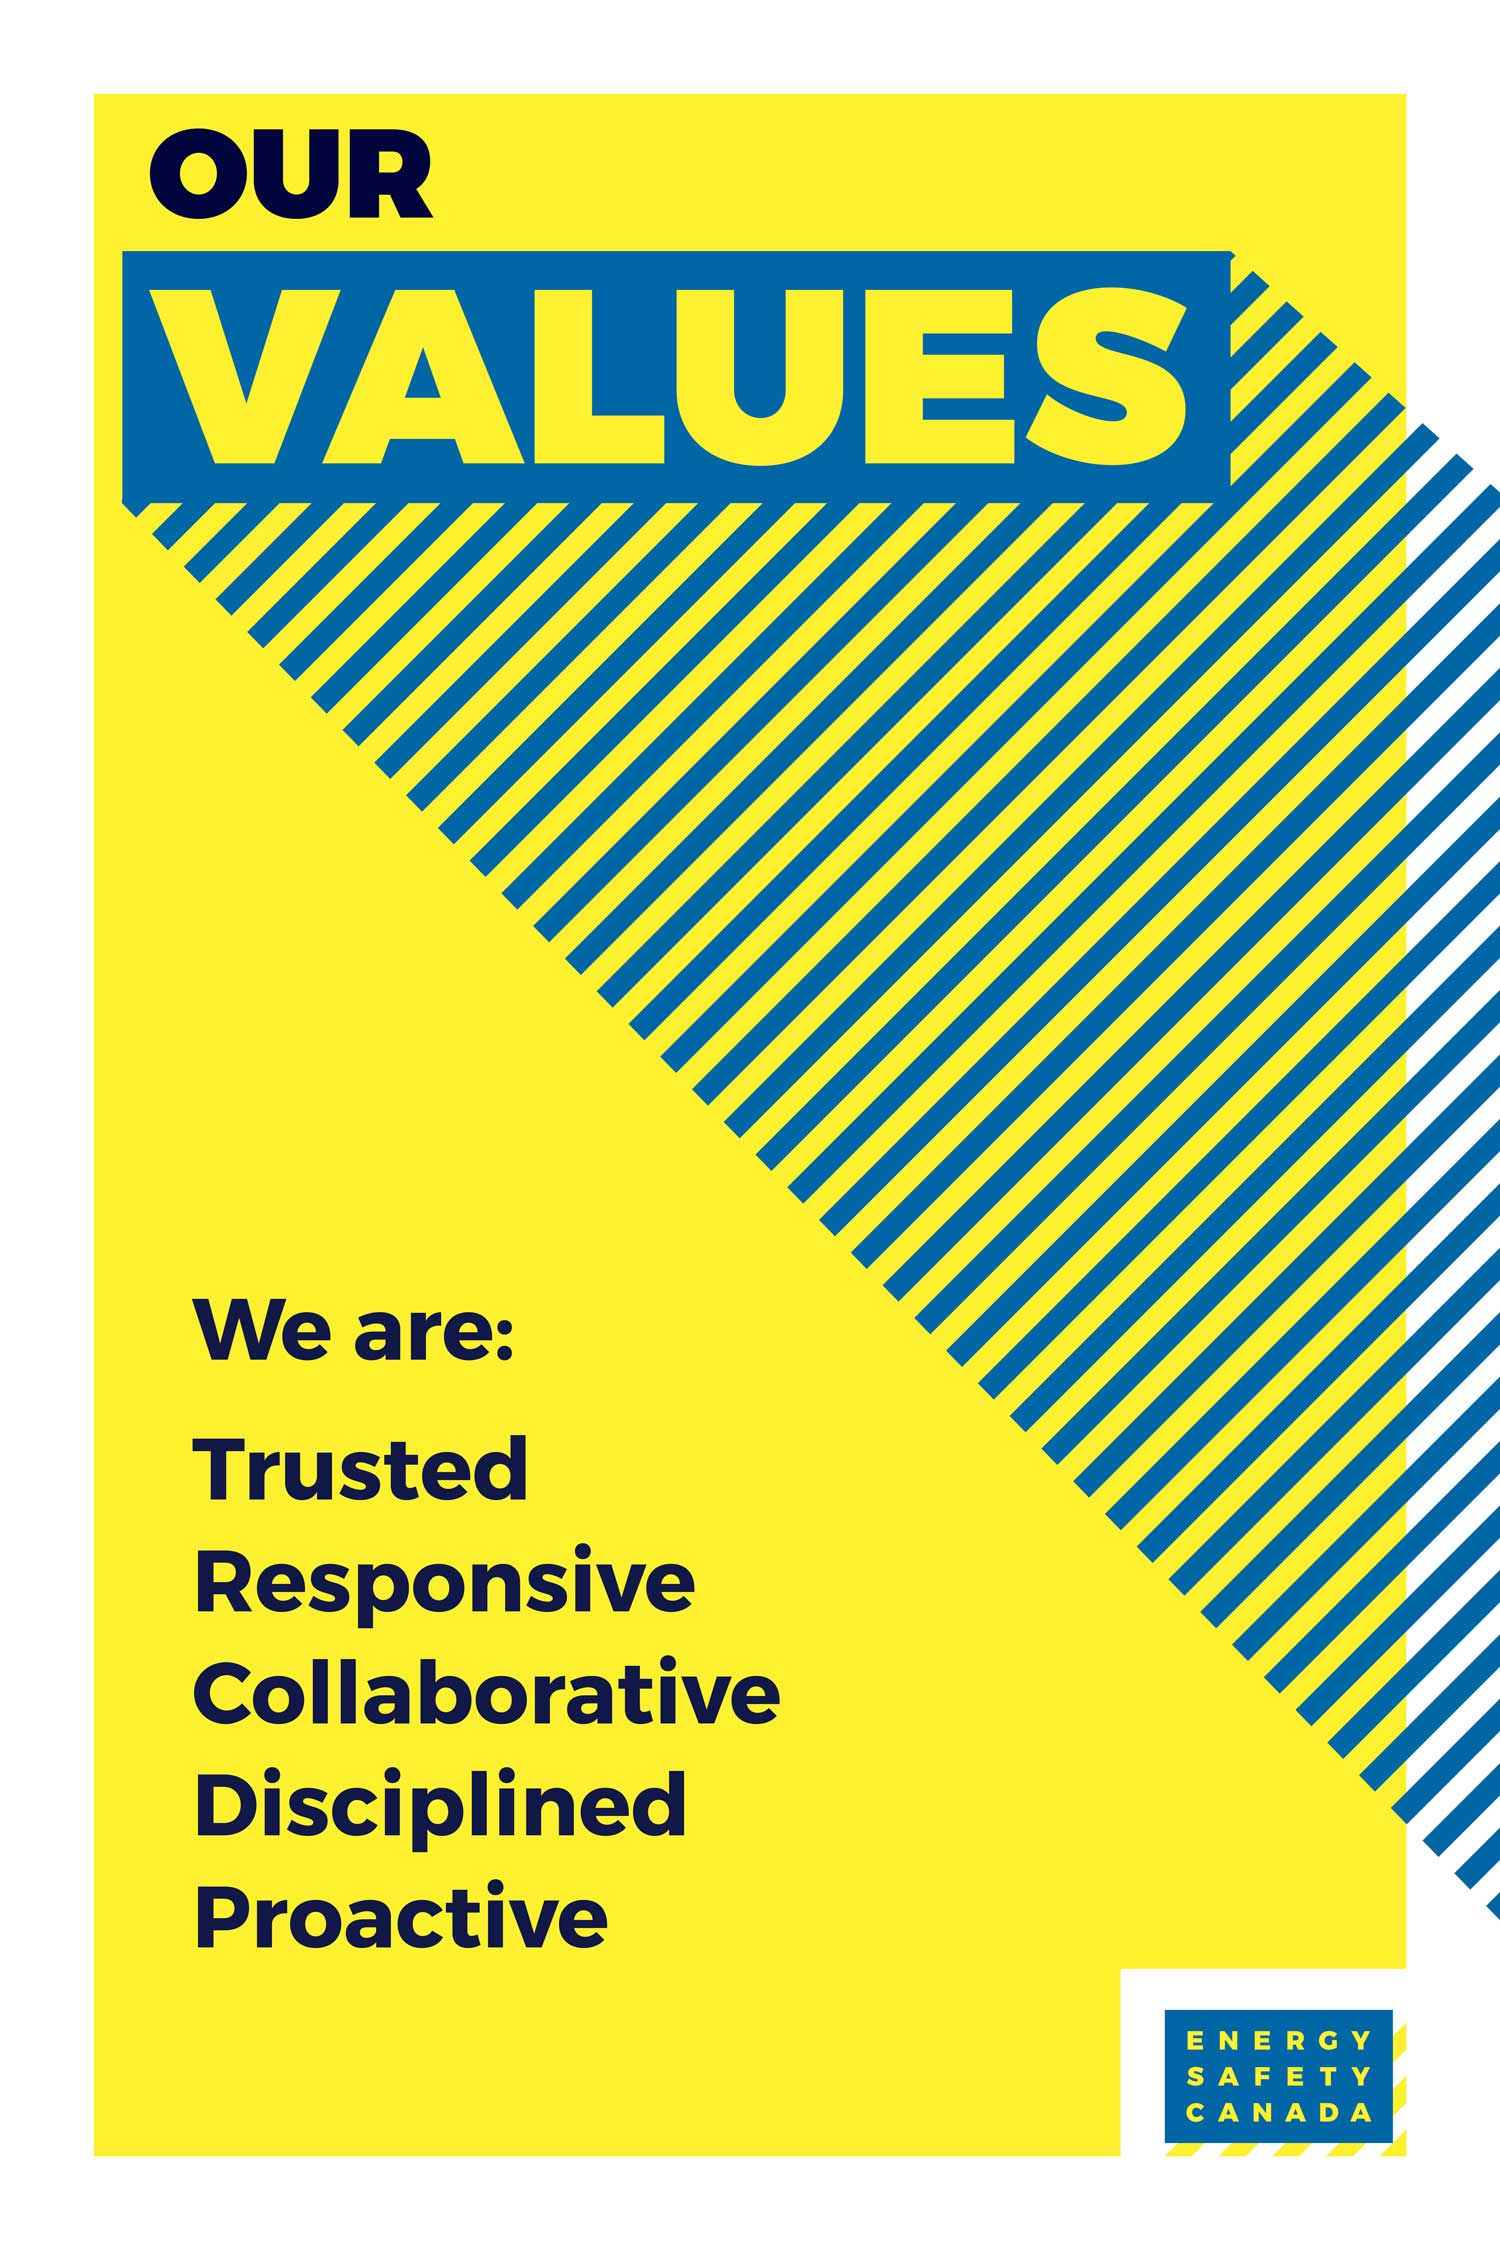 Internal brand poster design for energy safety canada on the corporate company values by studio forum